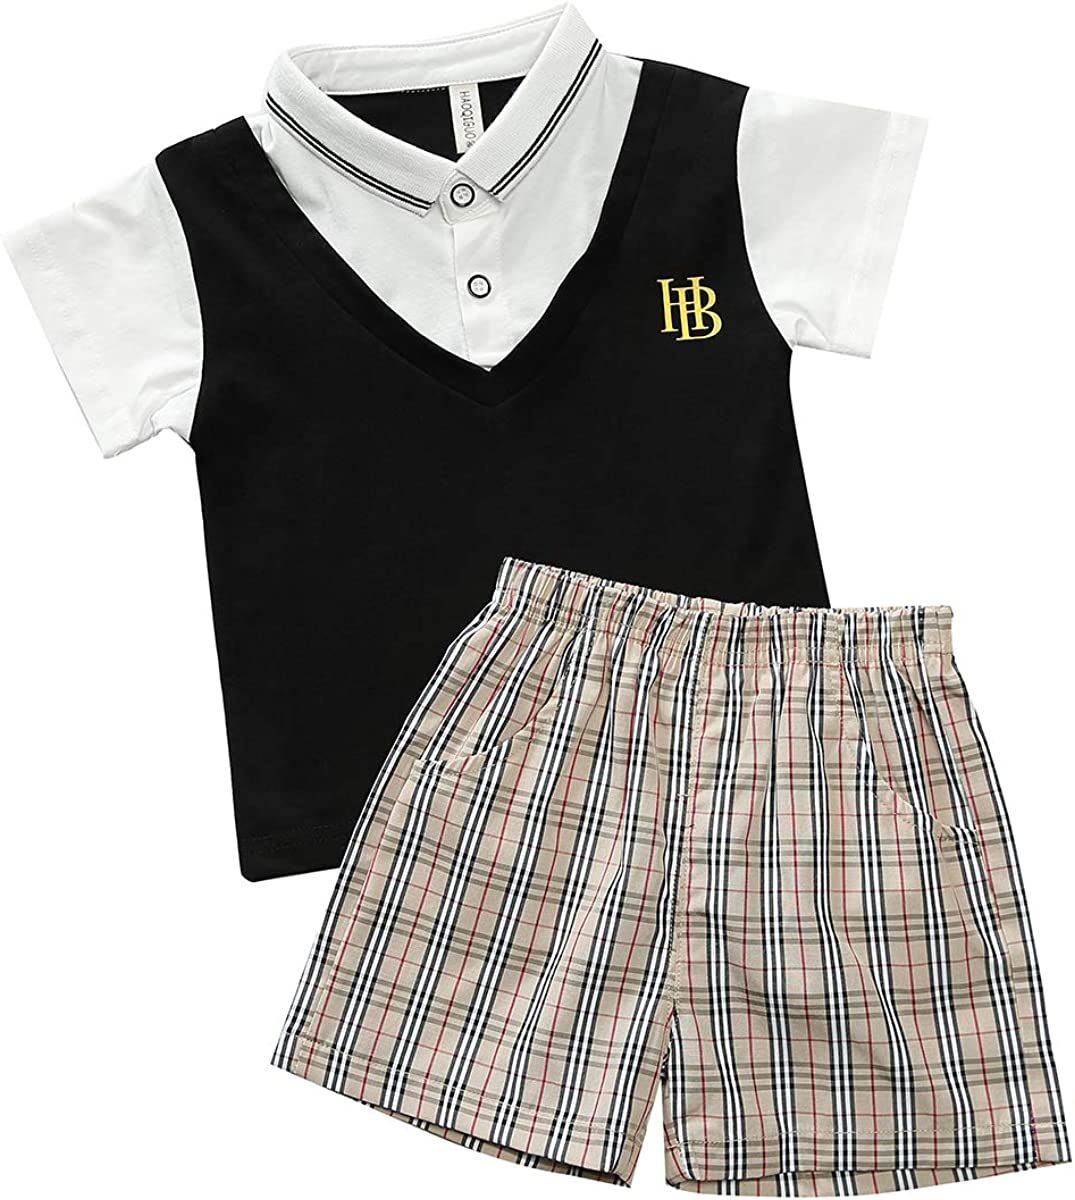 Boys Gentleman Outfit, Short Sleeve T-Shirt with Fake Vest & Pants & Bowtie,boy Clothing Suit